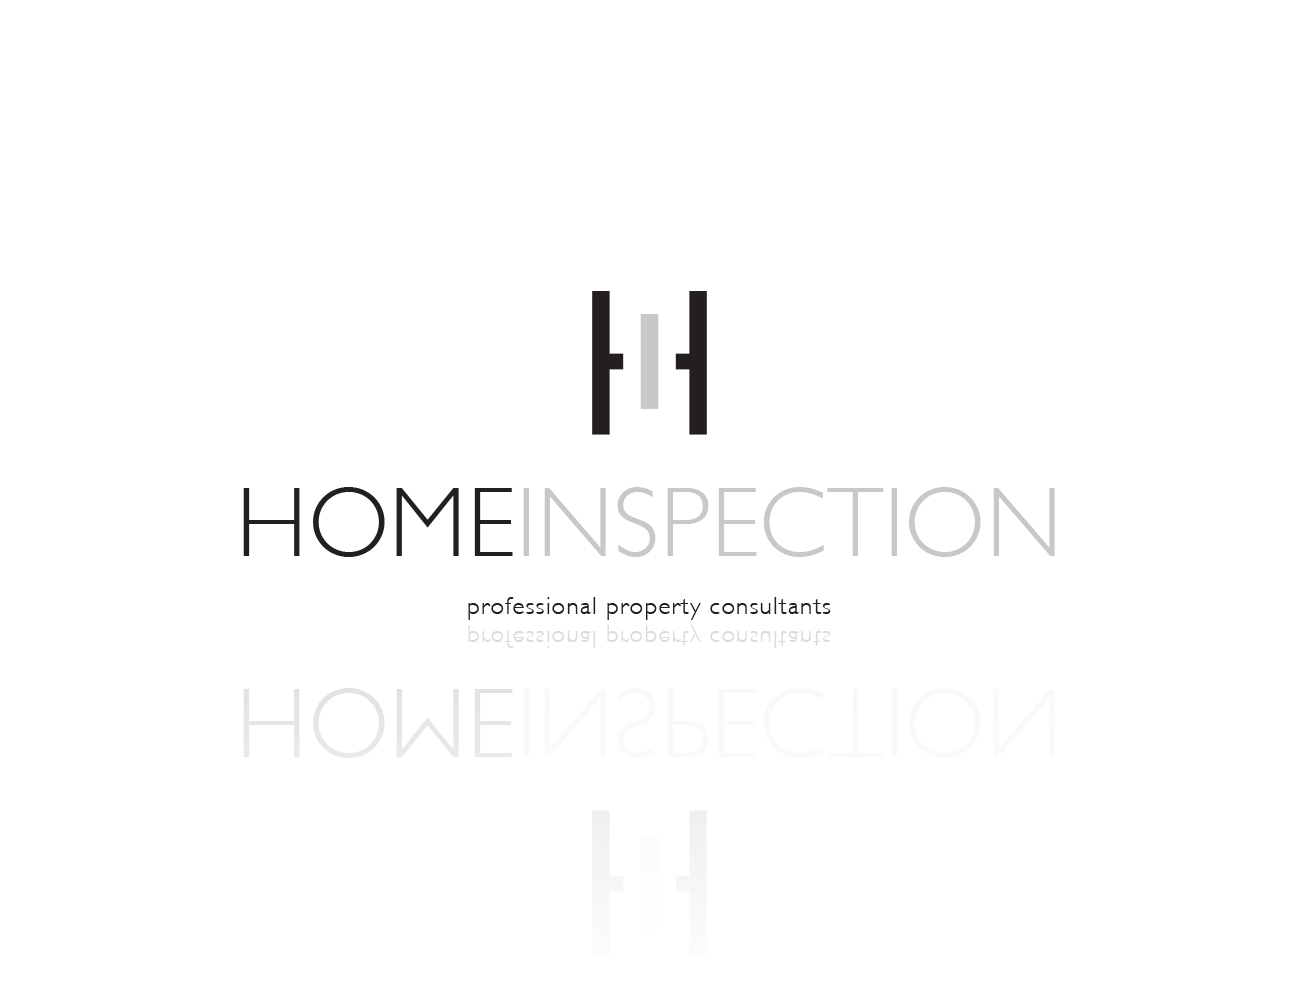 homeinspectionlogodesign4